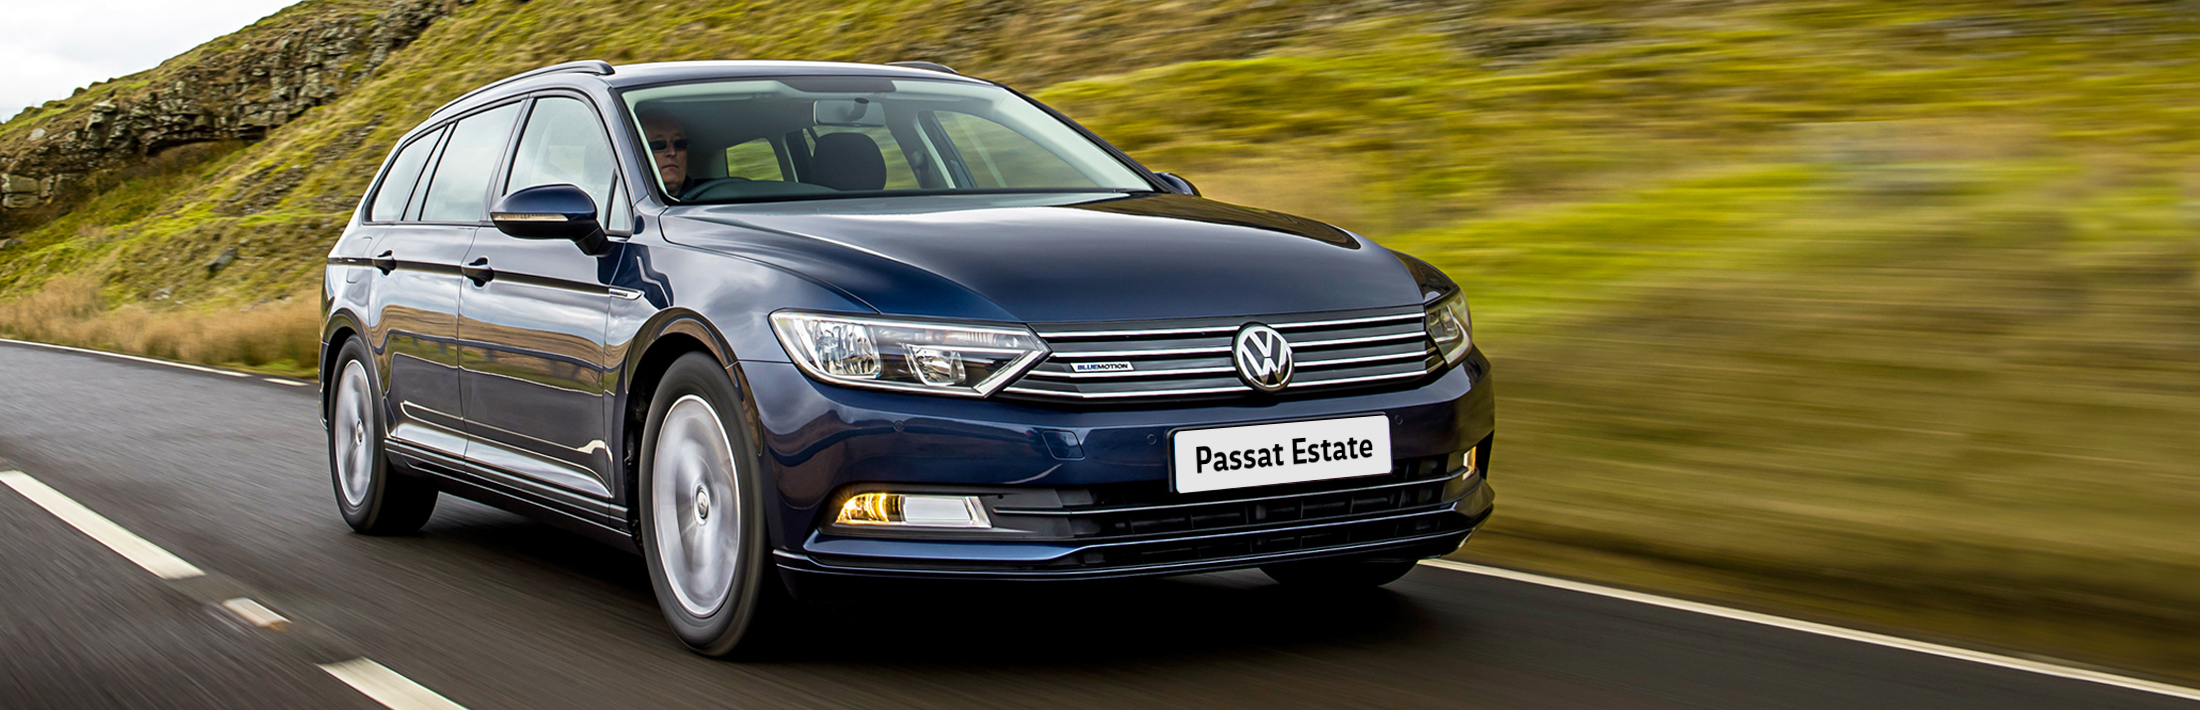 Passat Estate Offer Slider 2